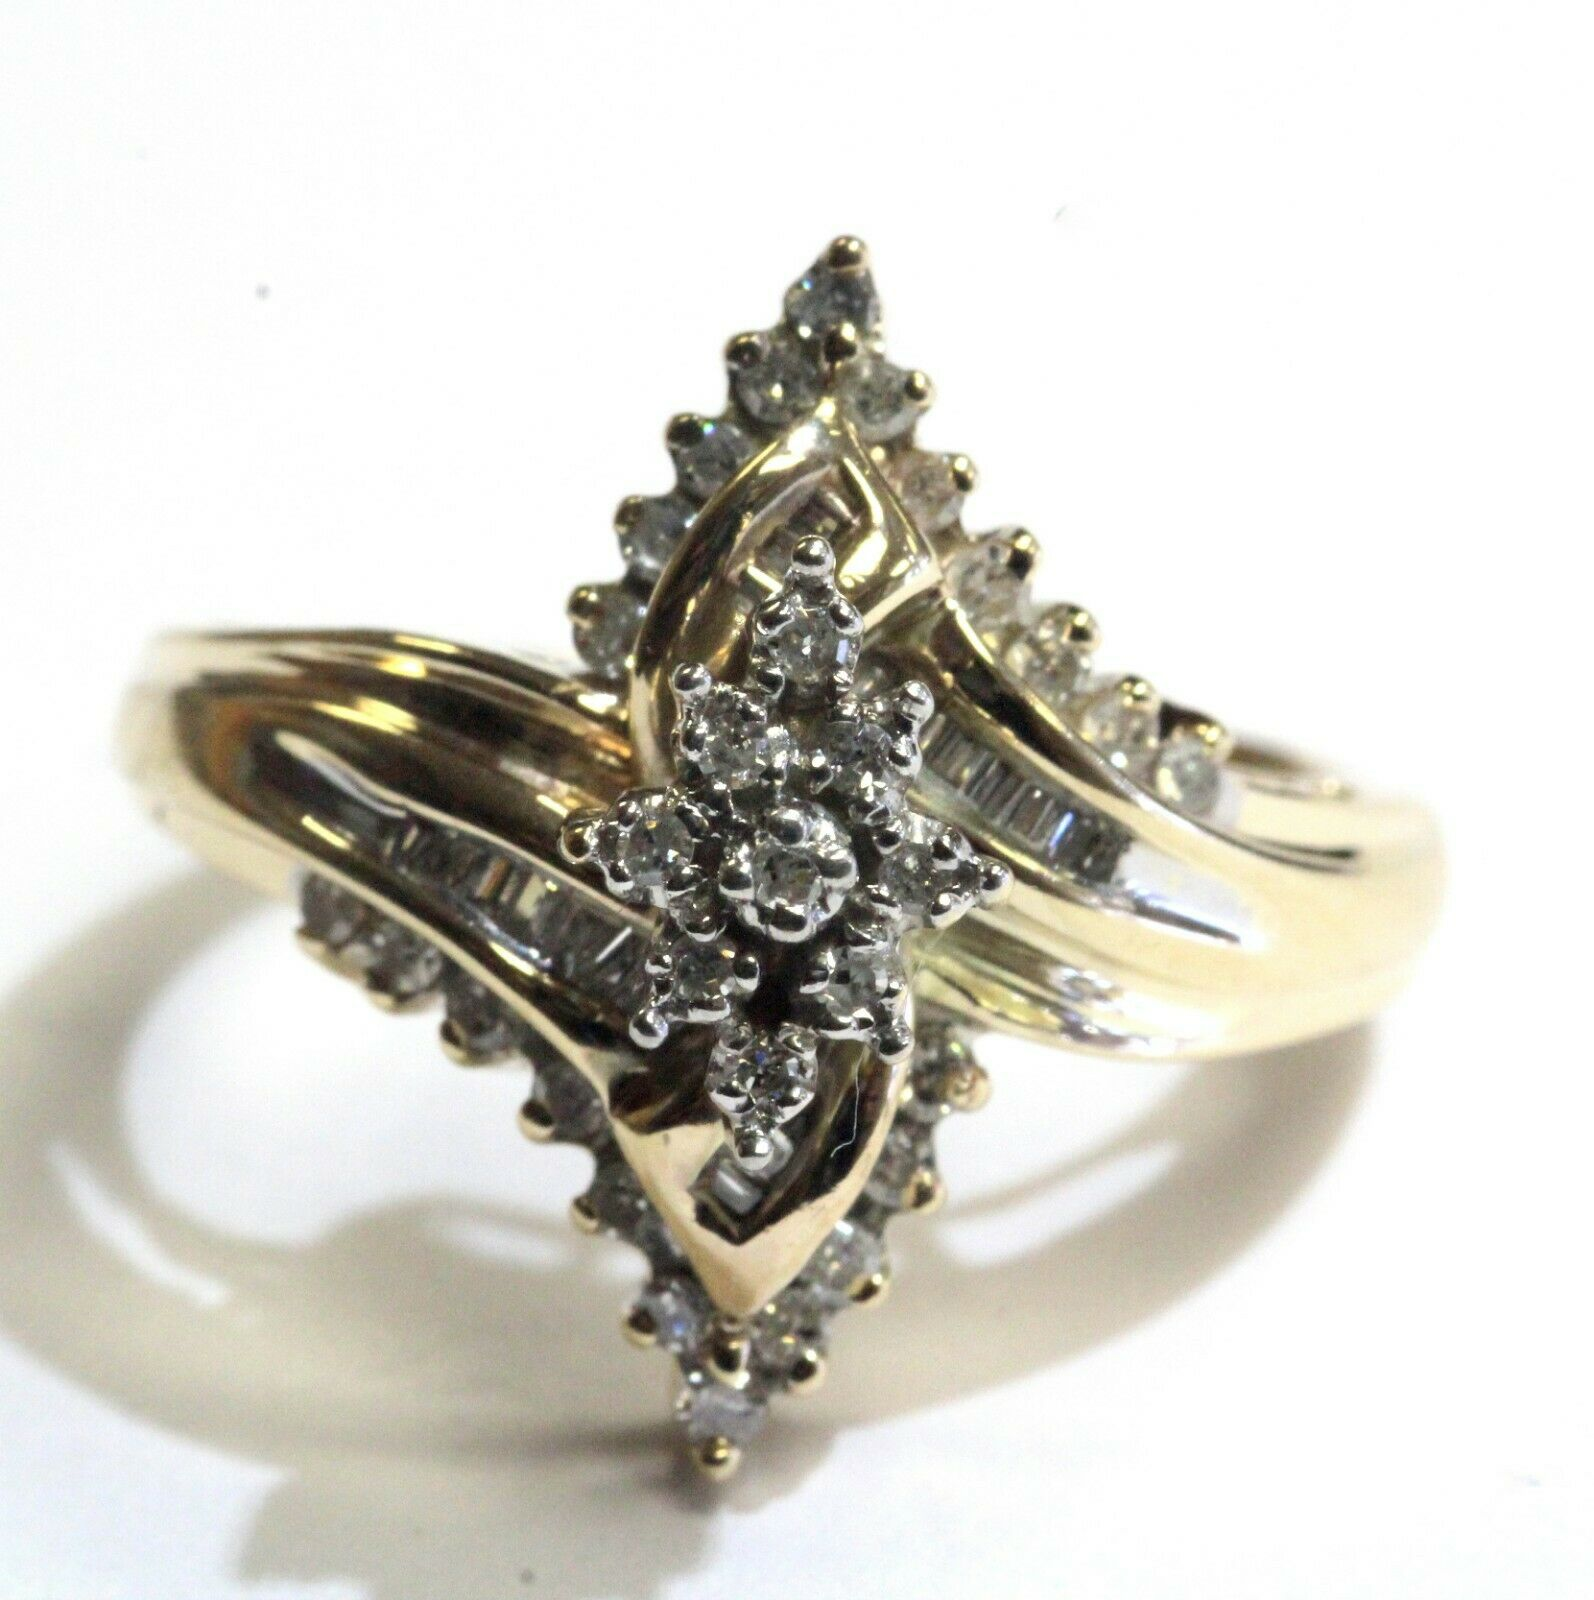 10k yellow gold .49ct SI2 H round diamond cluster ring 5.9g estate vintage